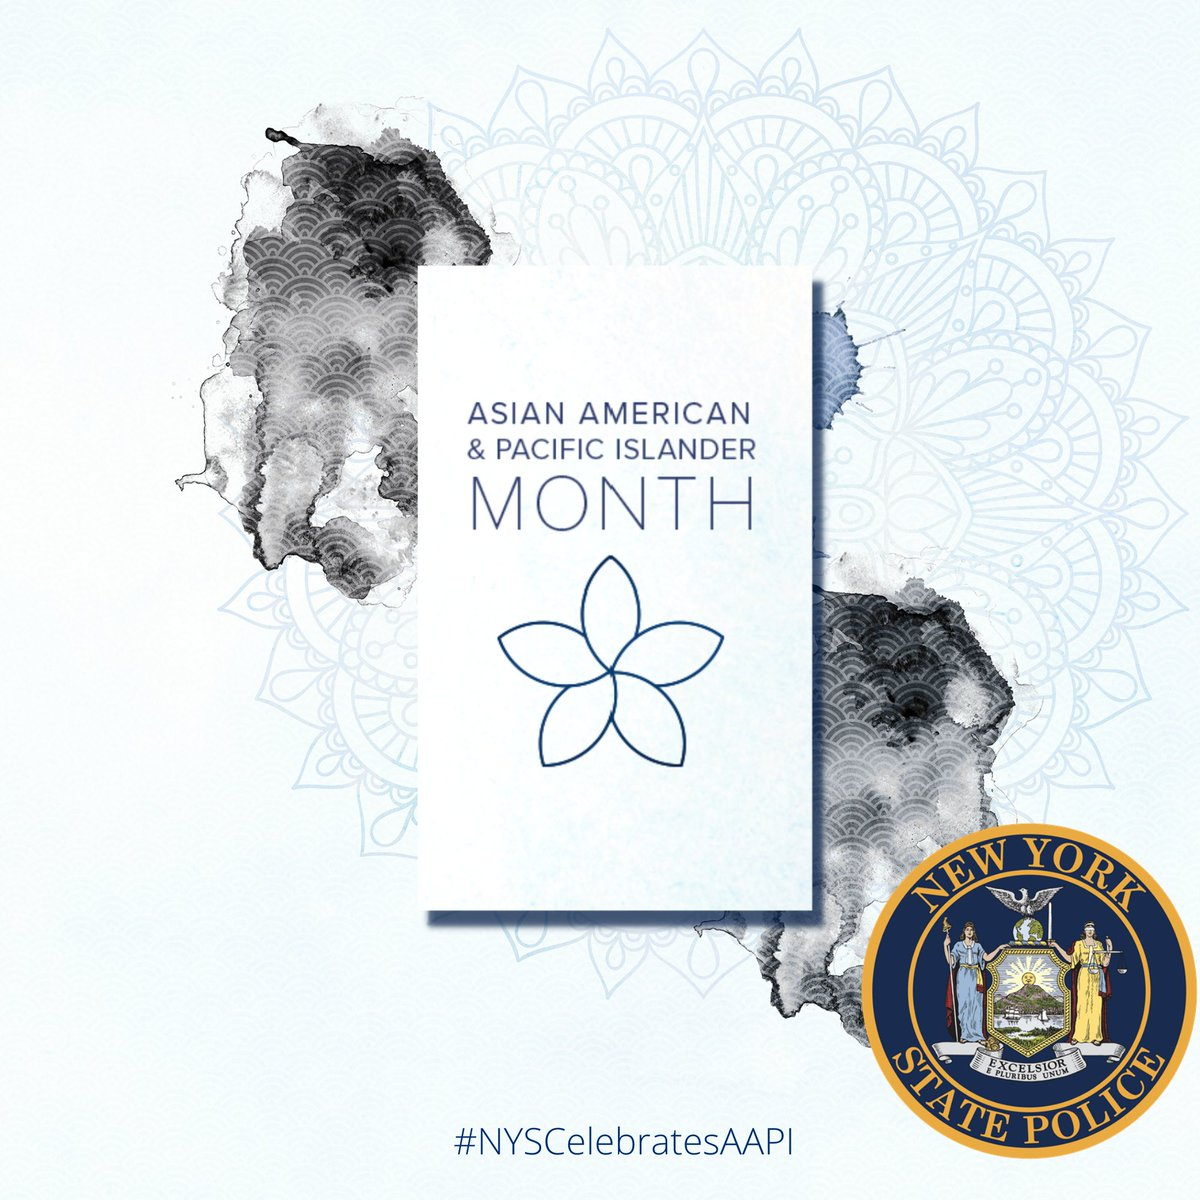 As we celebrate #AAPIHM, the men and women of the #NYSPolice are proud to stand with and serve all people from every community. #NYSCelebratesAAPI https://t.co/6mtTQfcAfM